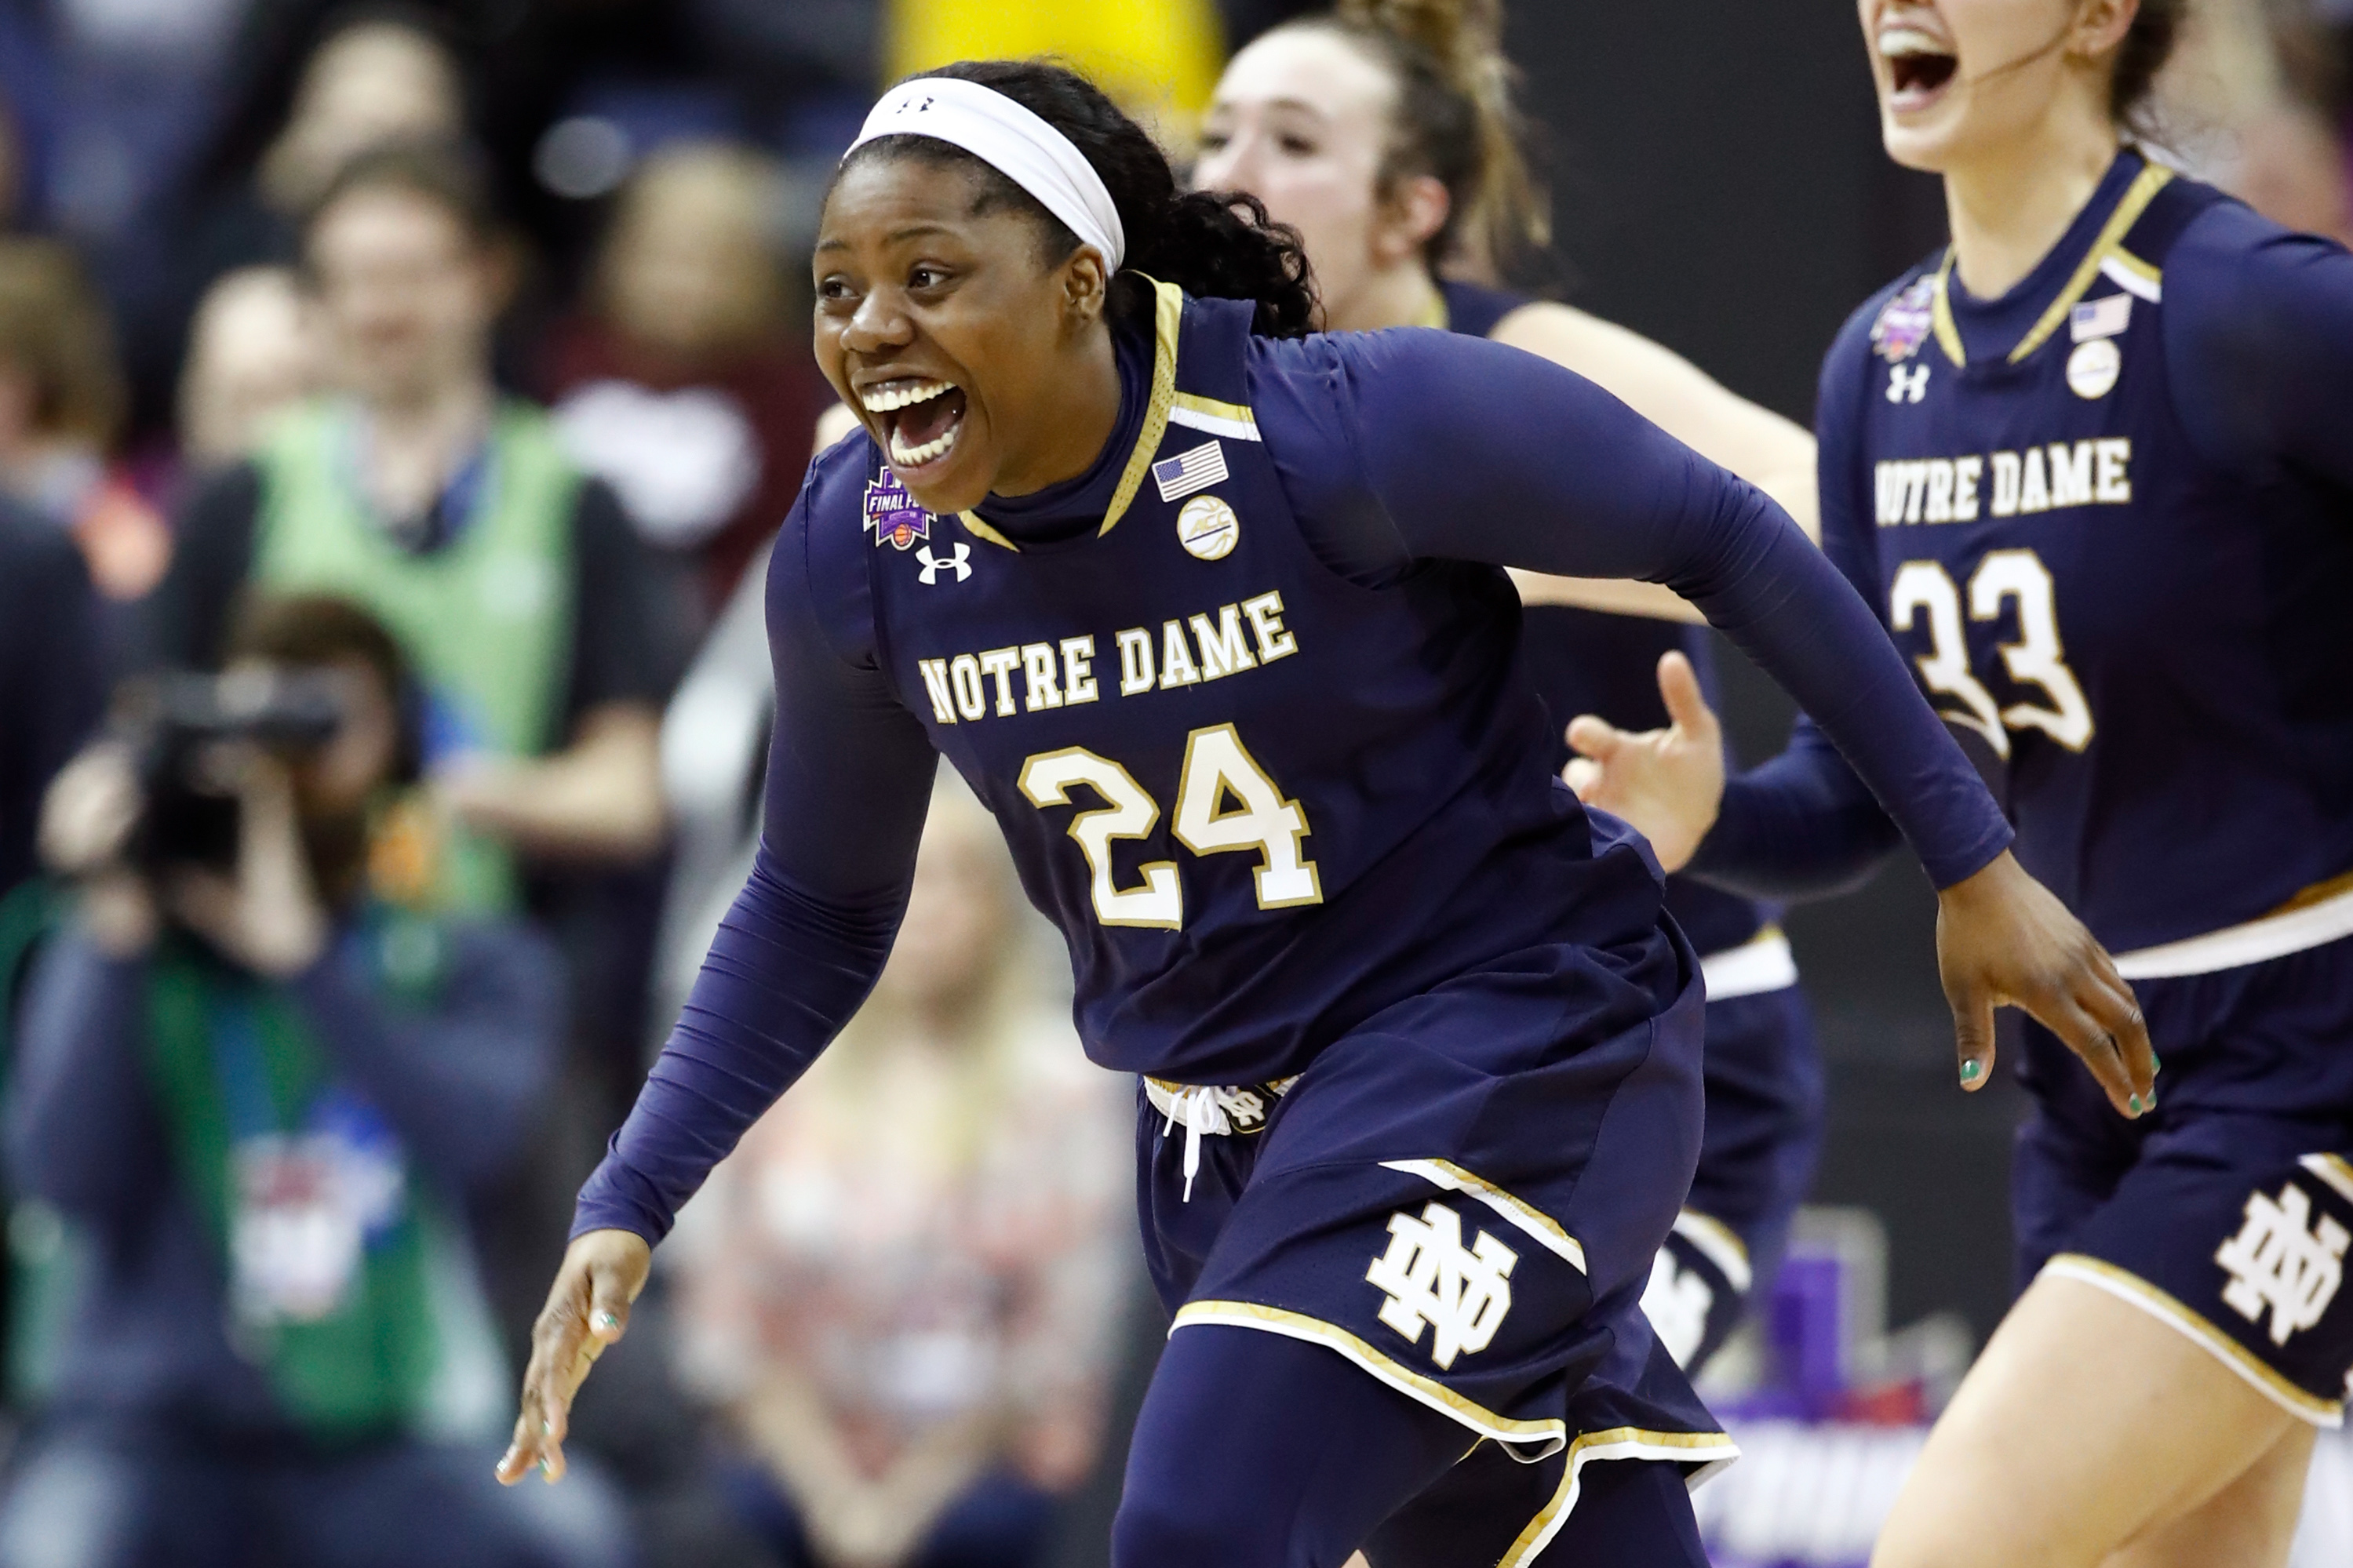 Arike Ogunbowale #24 of the Notre Dame Fighting Irish celebrates after scoring the game winning basket with 0.1 seconds remaining in the fourth quarter to defeat the Mississippi State Lady Bulldogs in the championship game of the 2018 NCAA Women's Final Four at Nationwide Arena on April 1, 2018 in Columbus, Ohio.